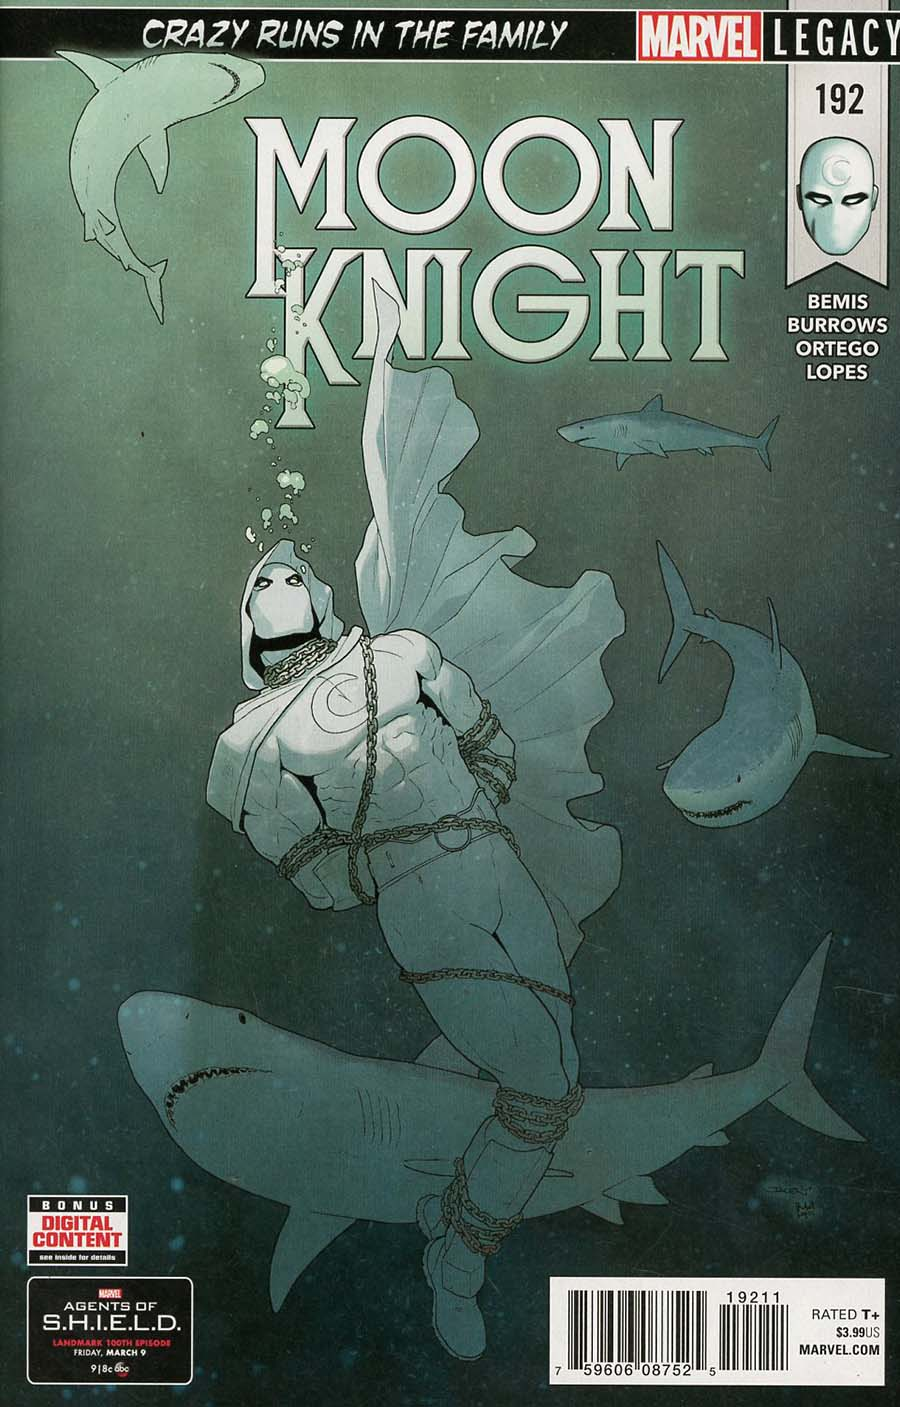 Moon Knight Vol 8 #192 (Marvel Legacy Tie-In)